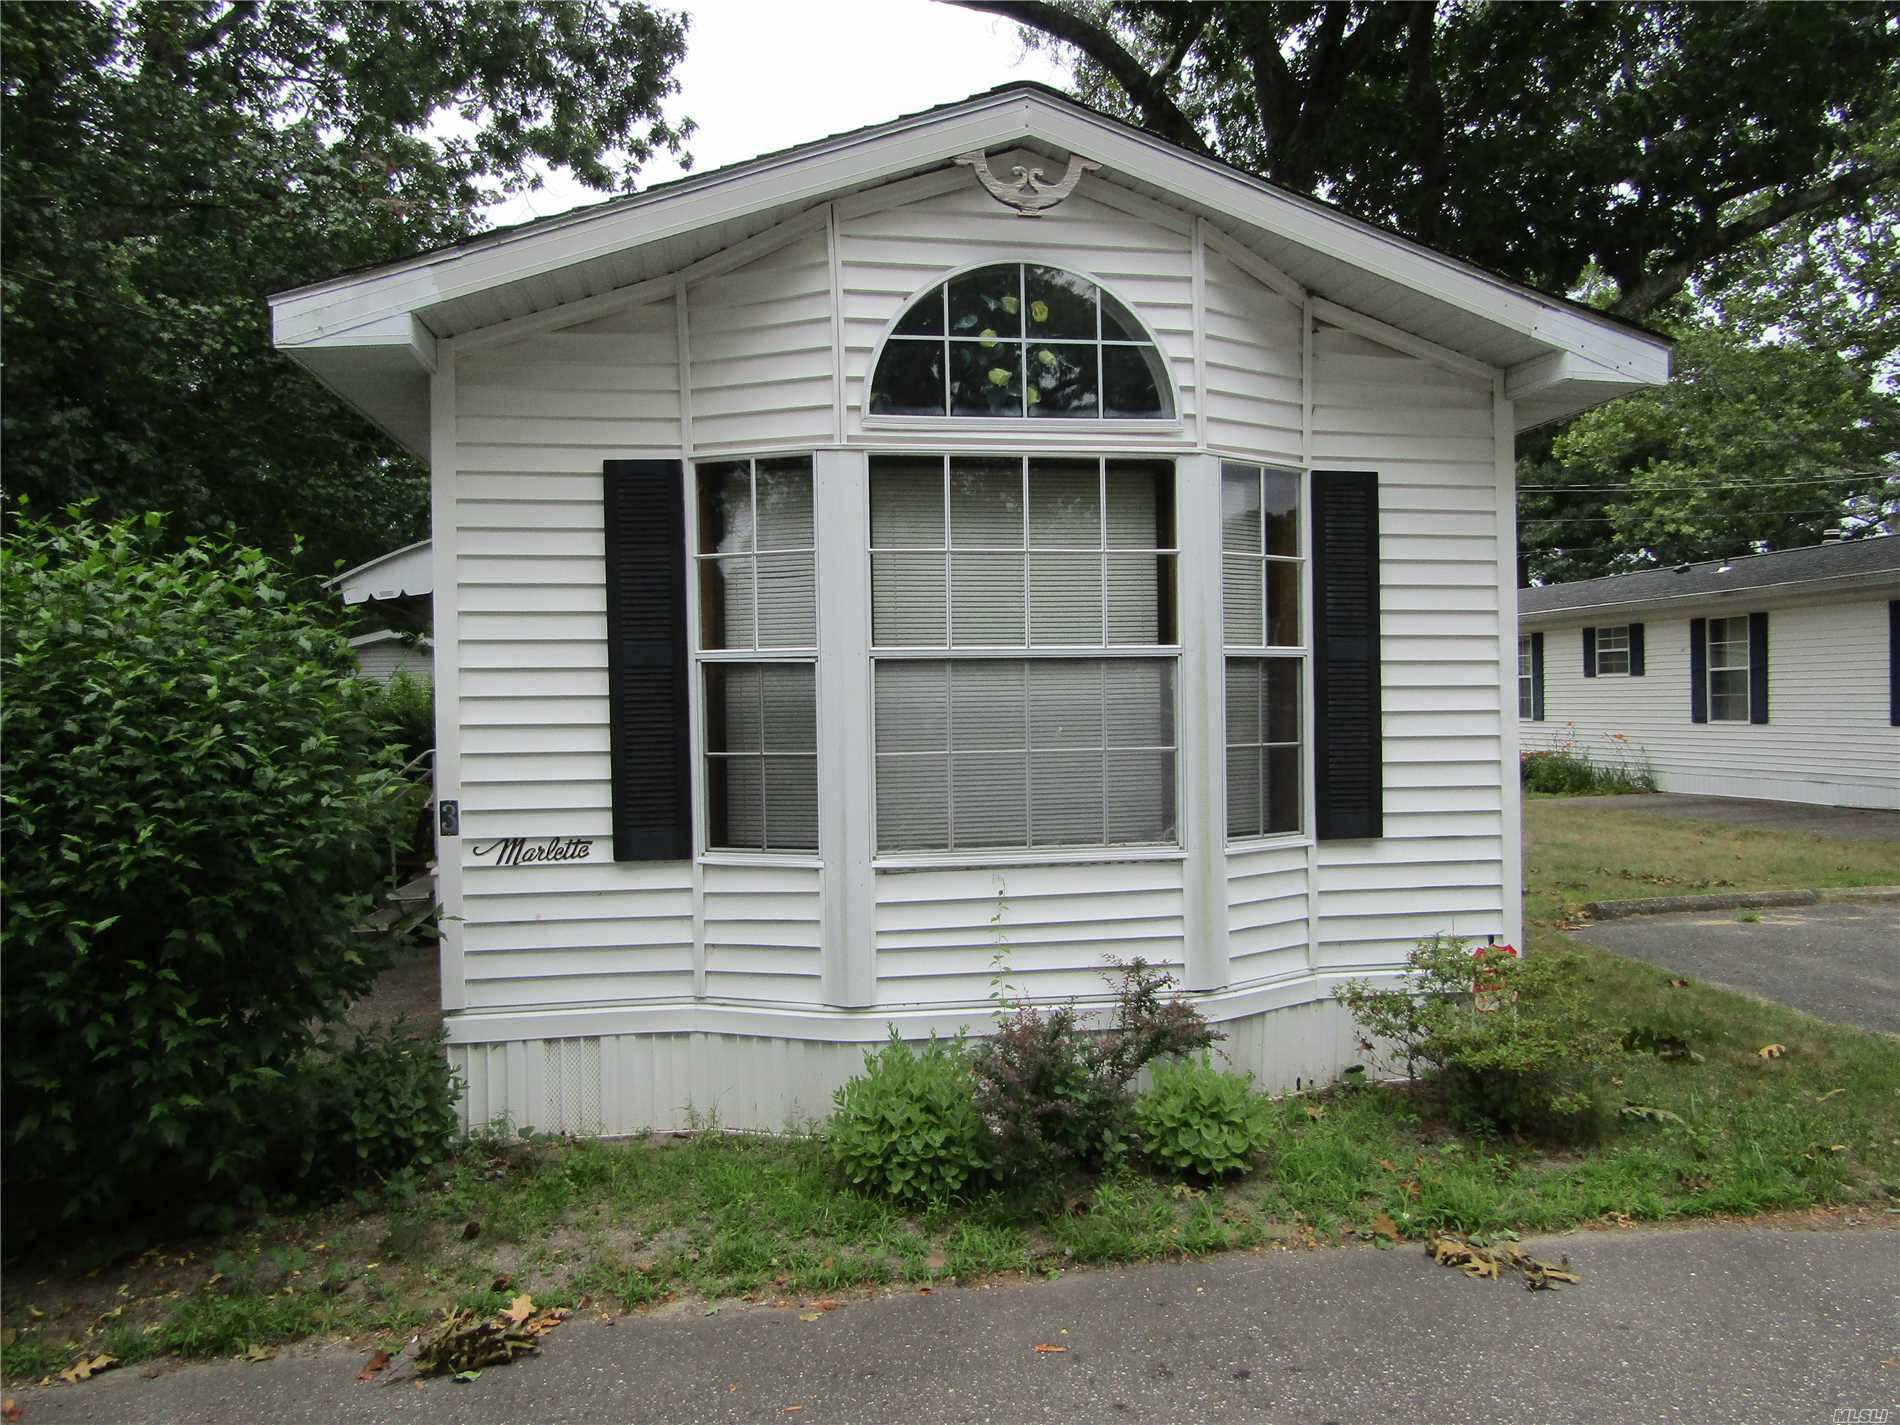 Nice Size 2 Br, 1 Bath Mobile Home. Lot Fee Is $684.27. Cac Not Working, Vinyl Sided, Shed, Lots Of Cabinets In Kitchen, Master Br Has 2 Large Closets.